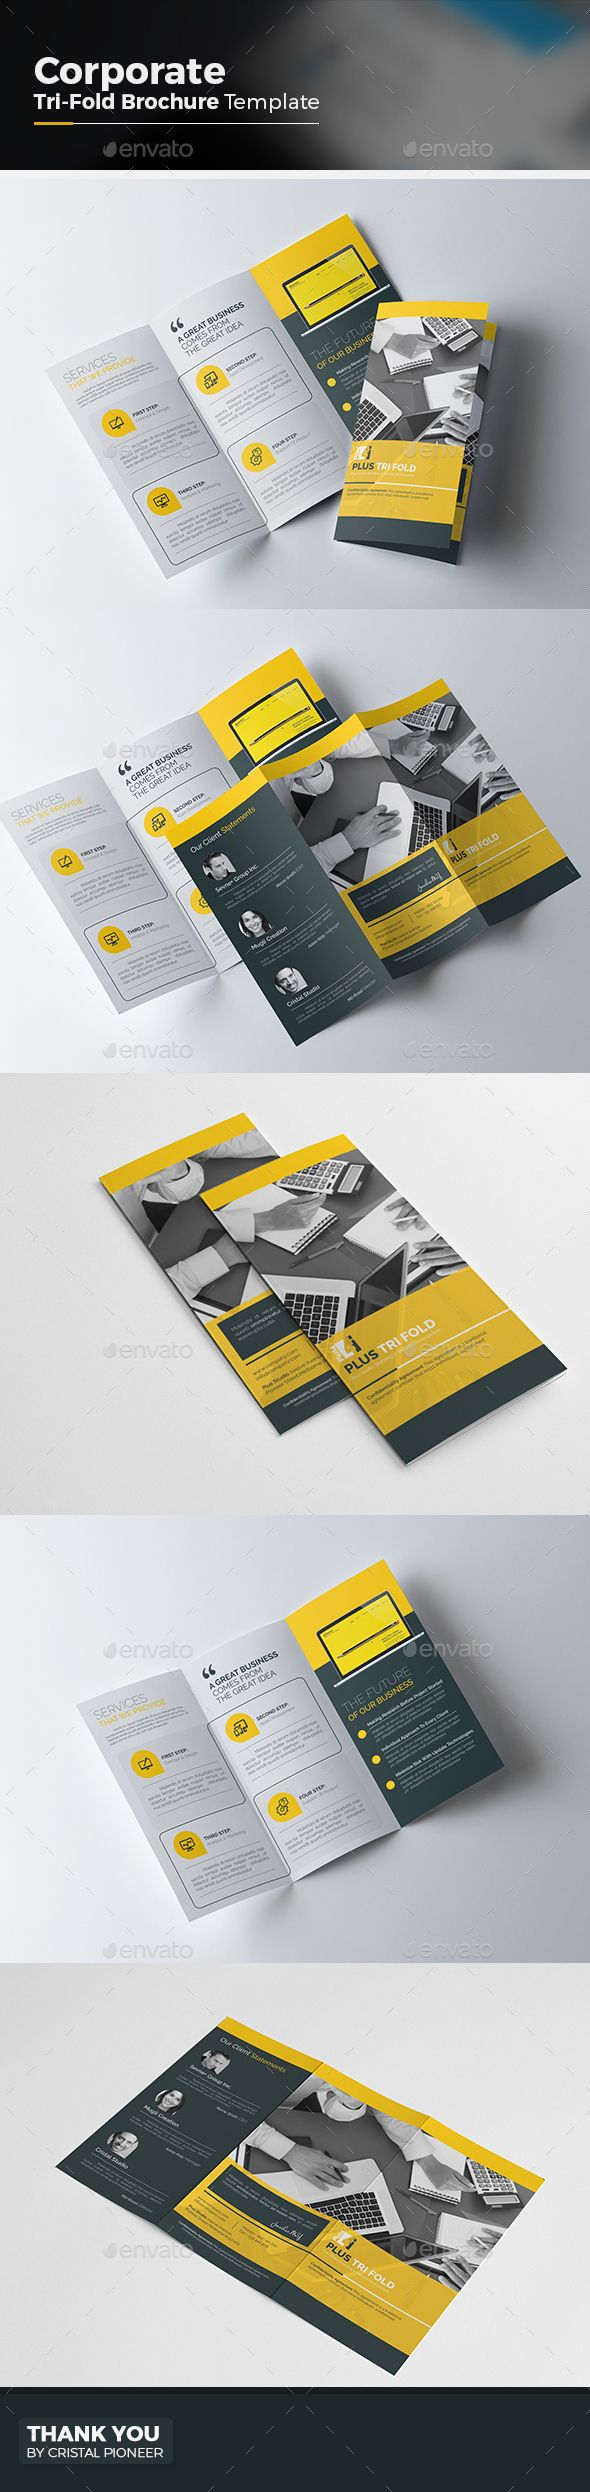 Corporate Tri fold Brochure Template Vector EPS, AI. Download here: http://graphicriver.net/item/corporate-tri-fold-brochure/15171746?ref=ksioks